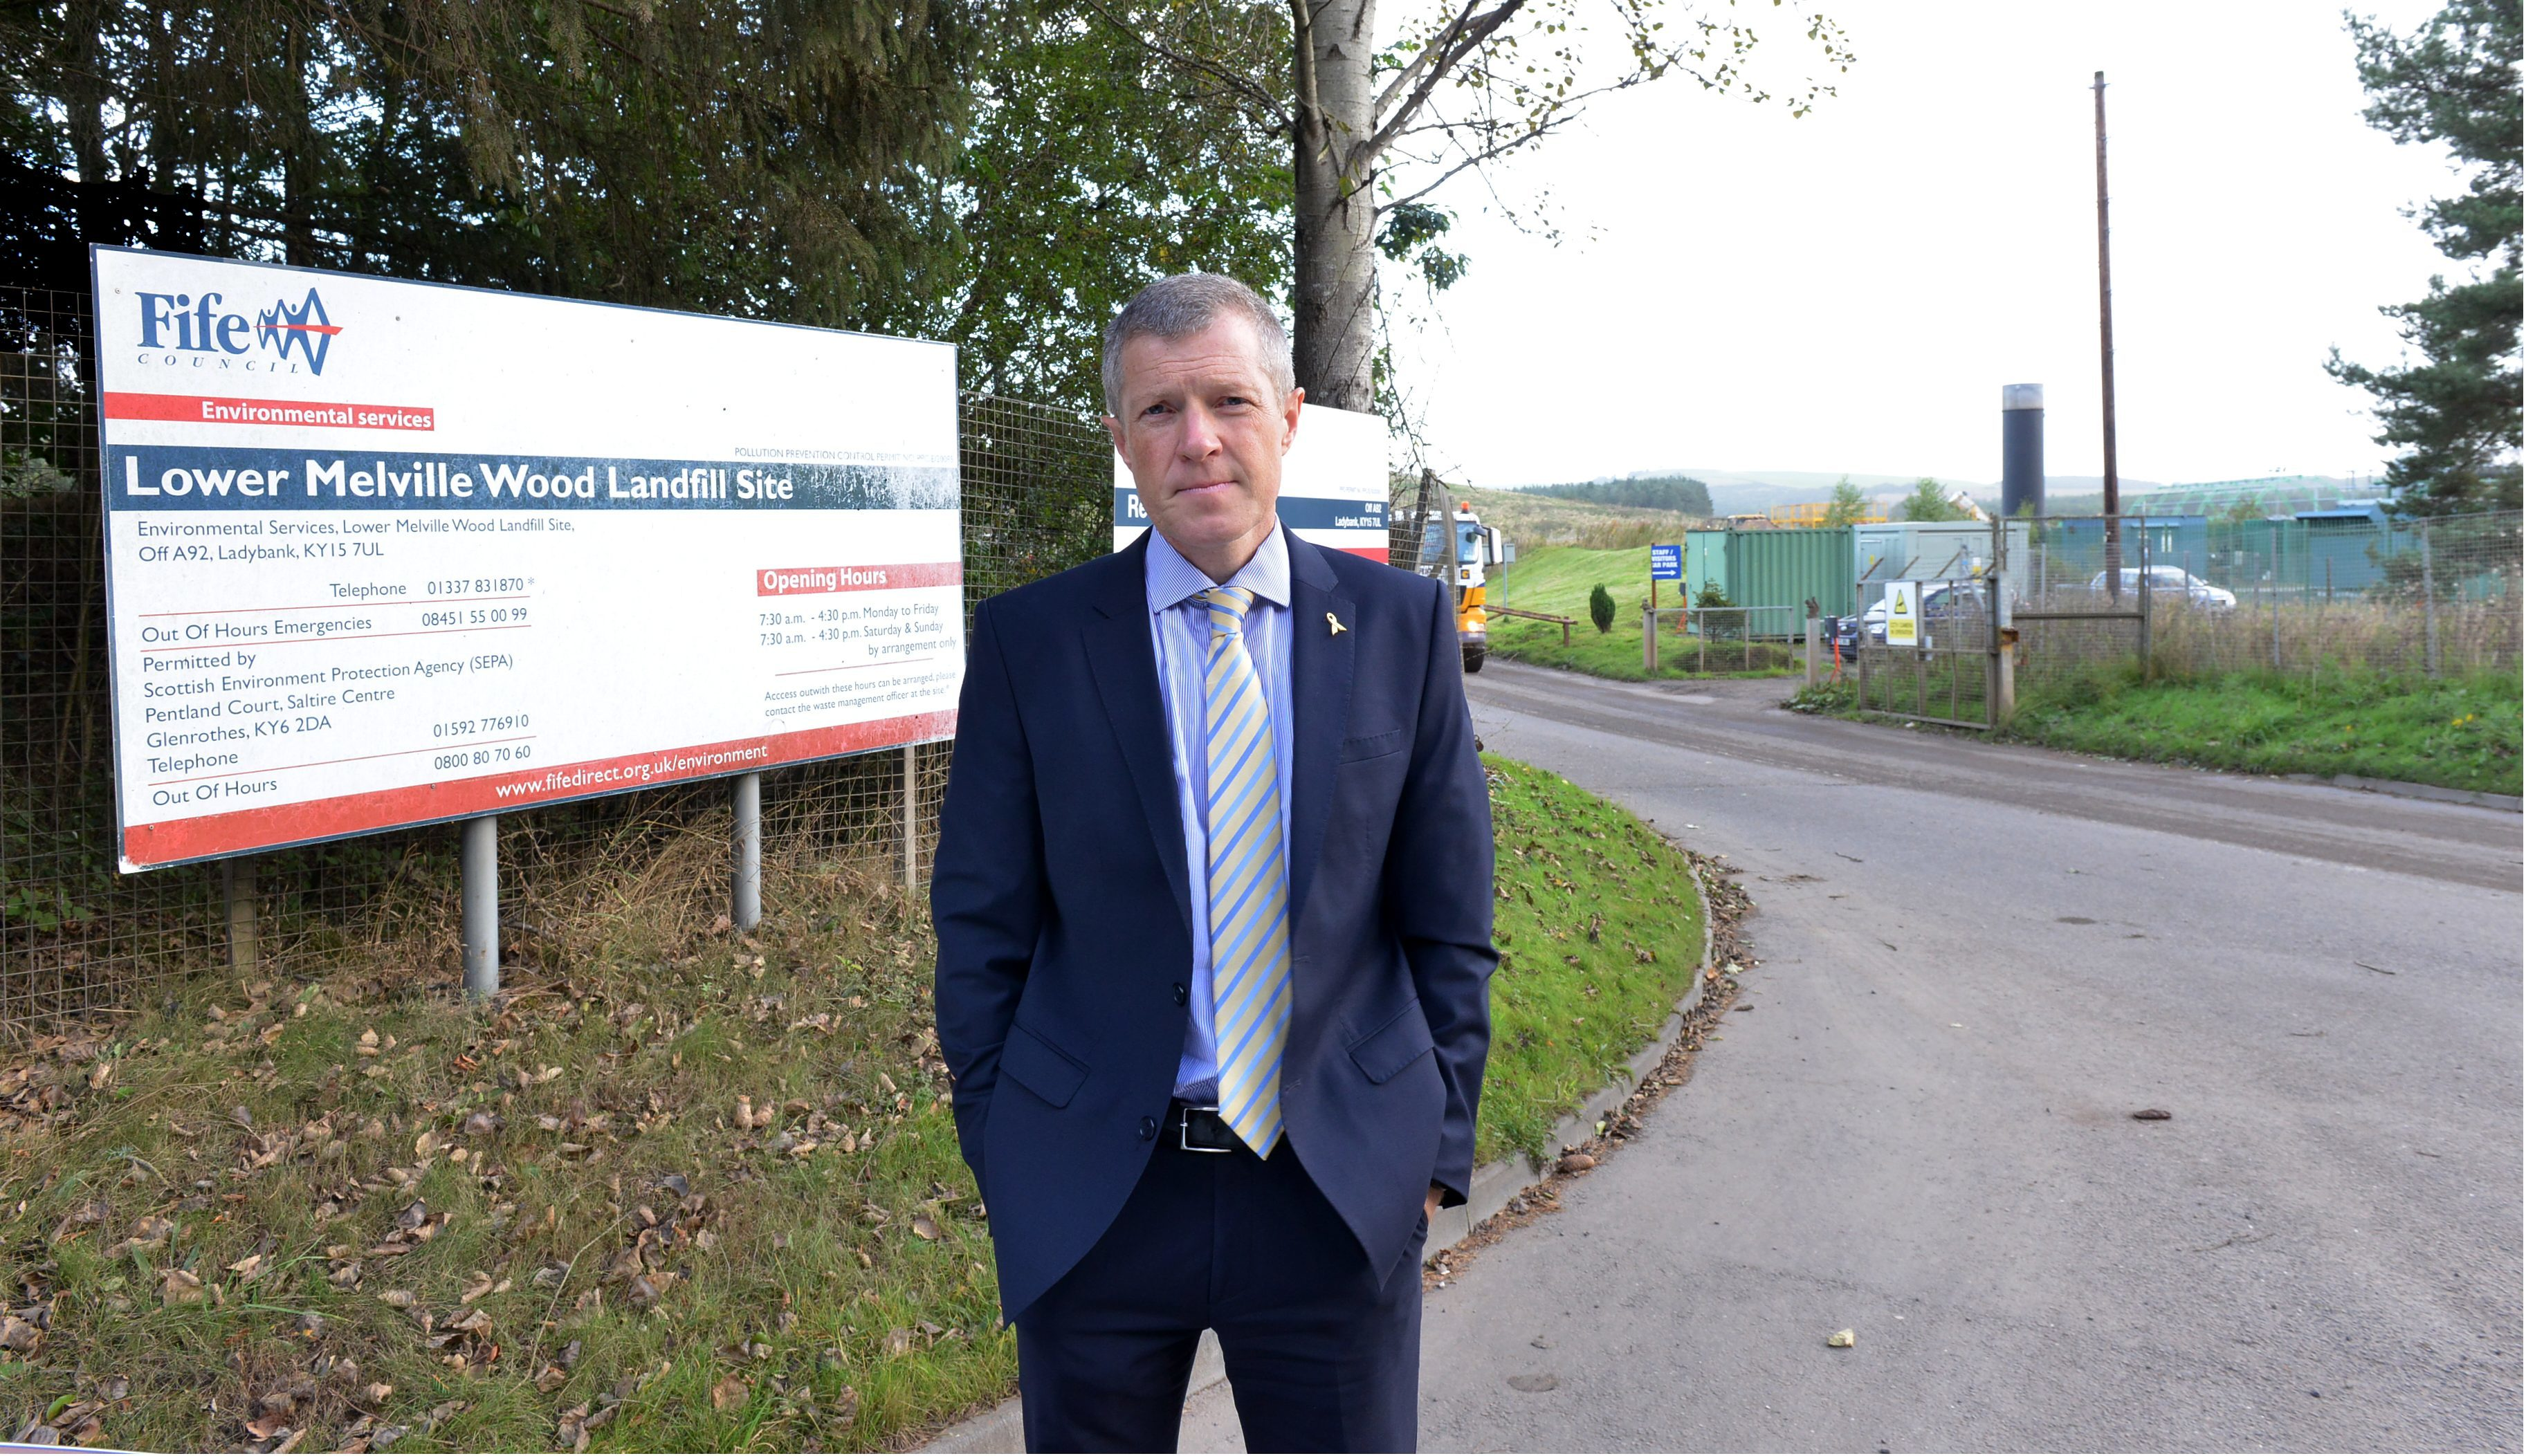 Willie Rennie MSP recently took up residents' concerns about odour problems coming from the Lower Melville Wood landfill site.